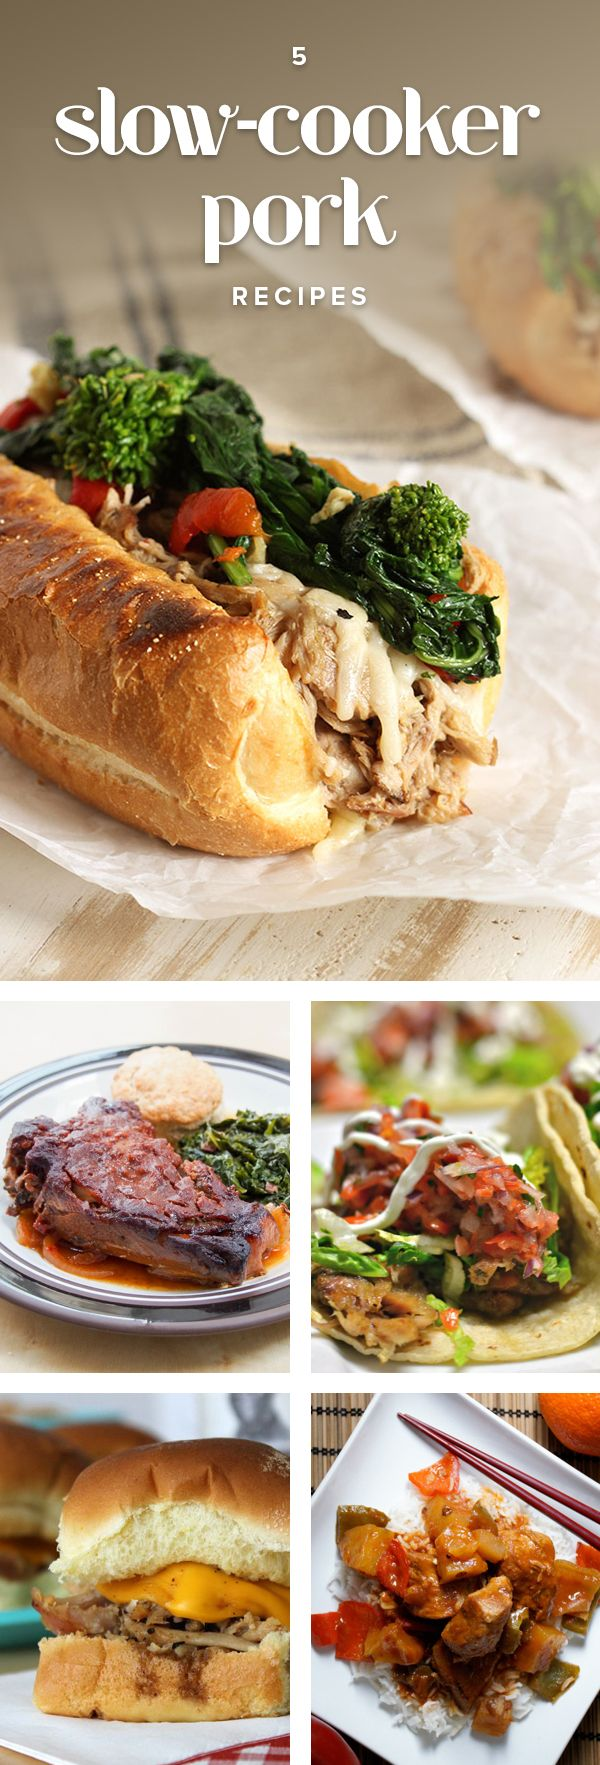 5 slow-cooker pork recipes that take dinner to the next level